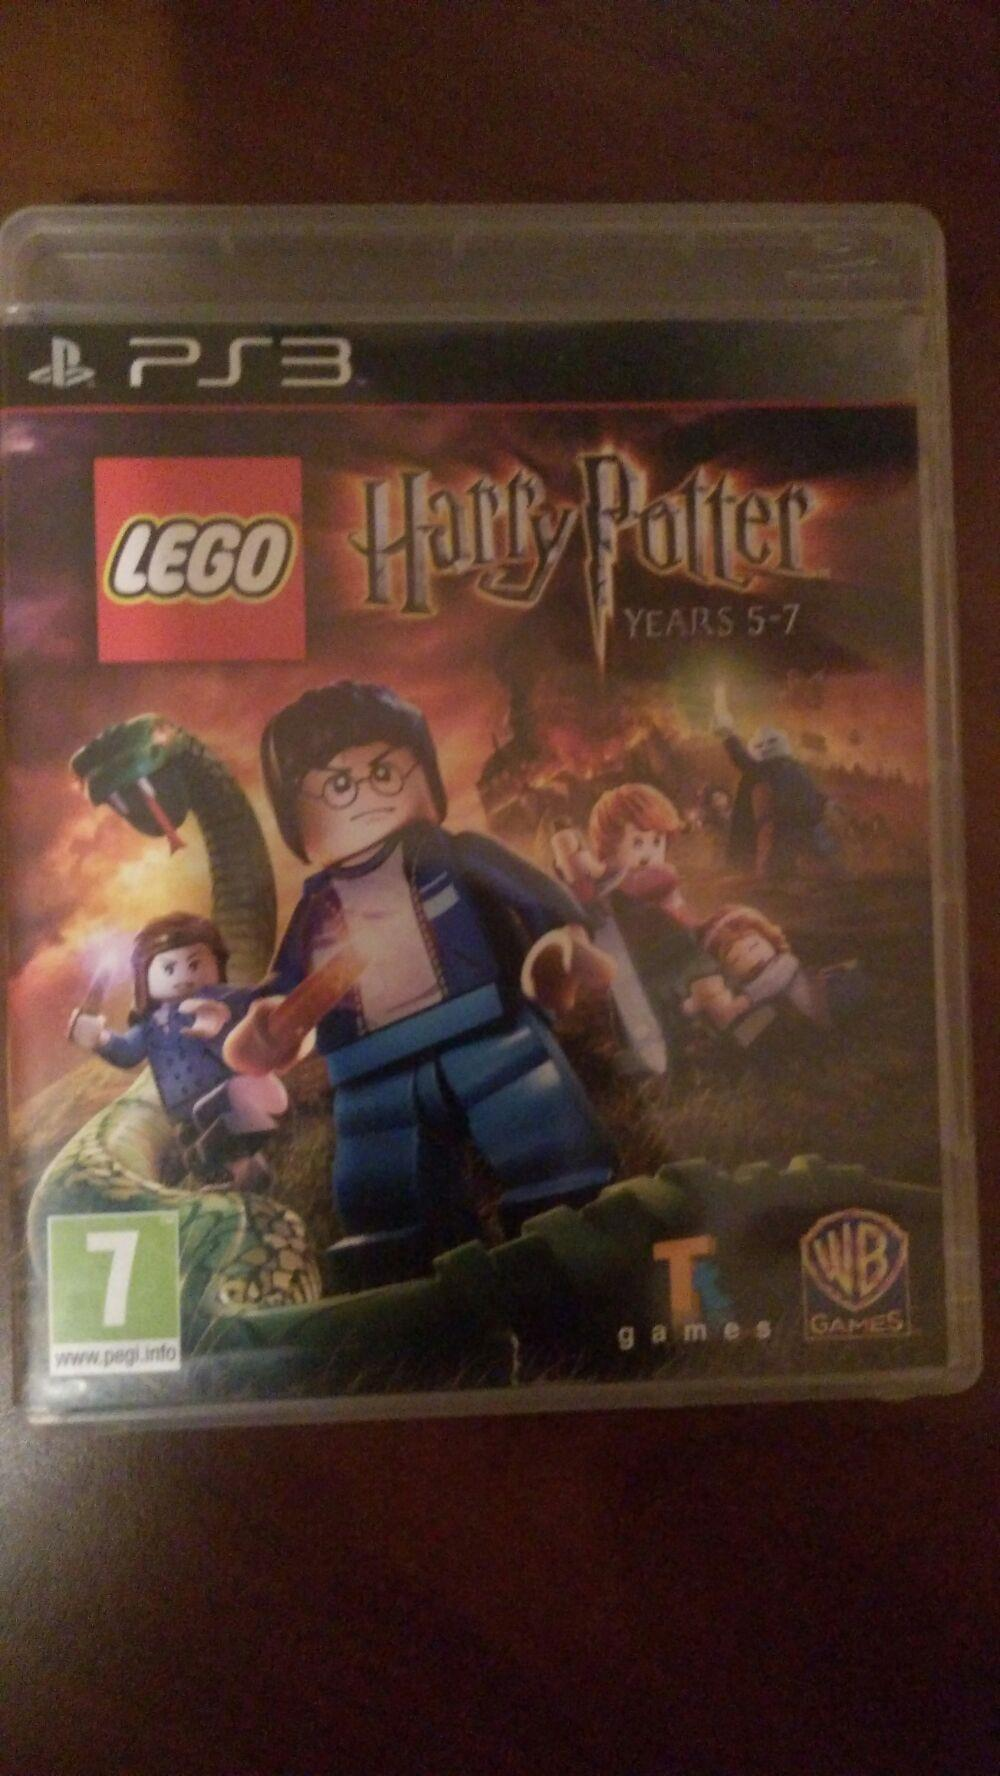 Vand Lego Harry Potter Years 5-7 PS3 Playstation 3